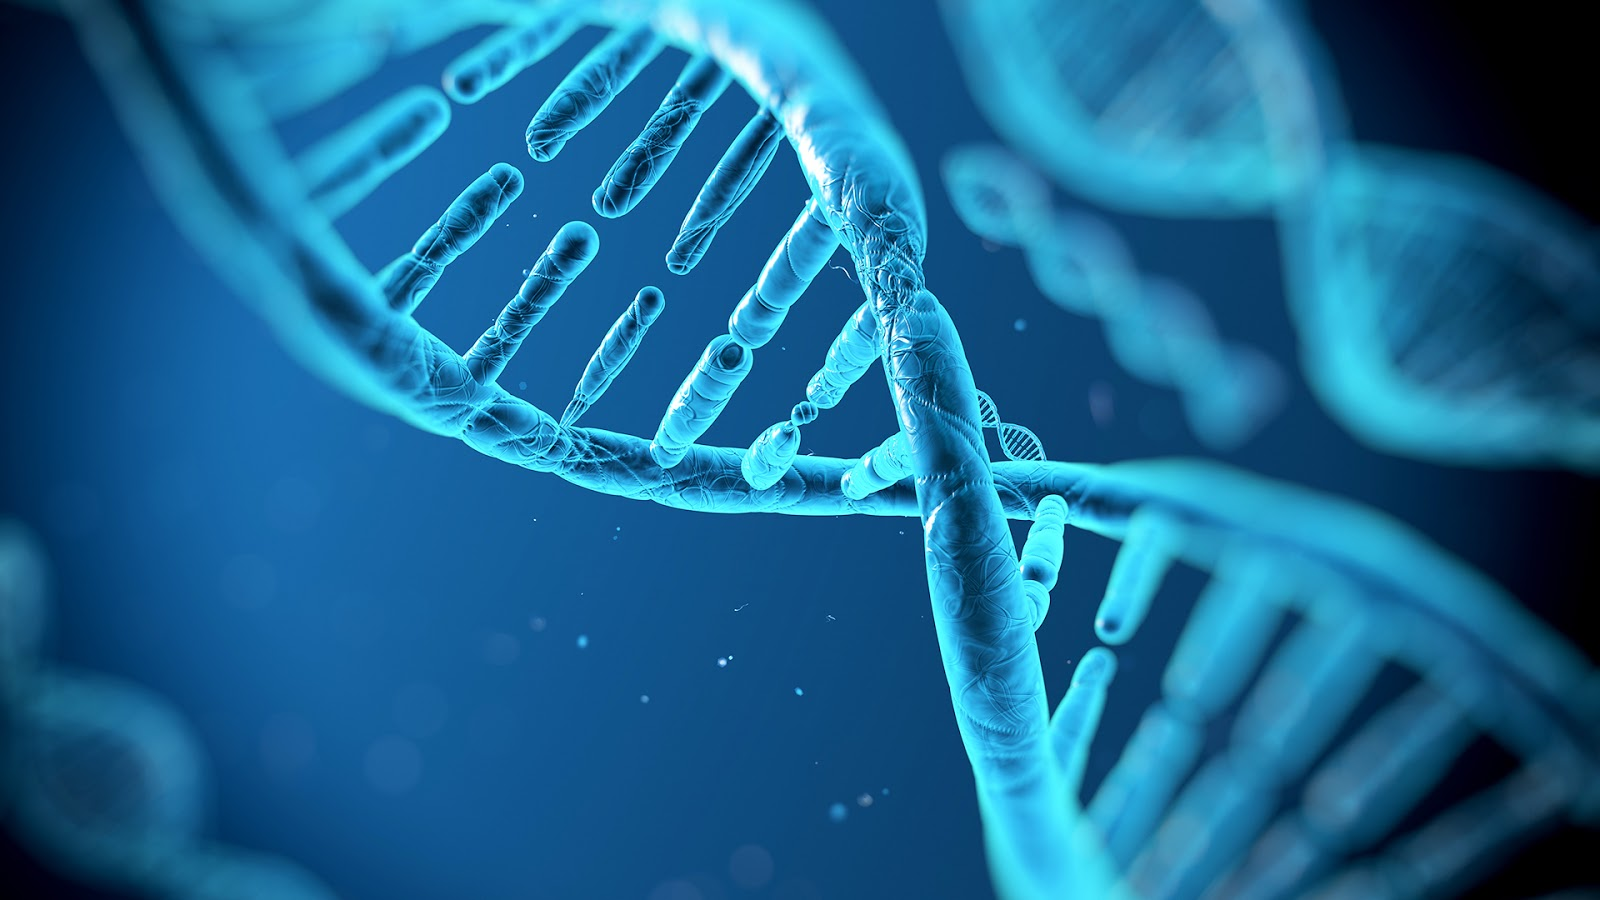 DNA Chip - Genetic Testing of the Future